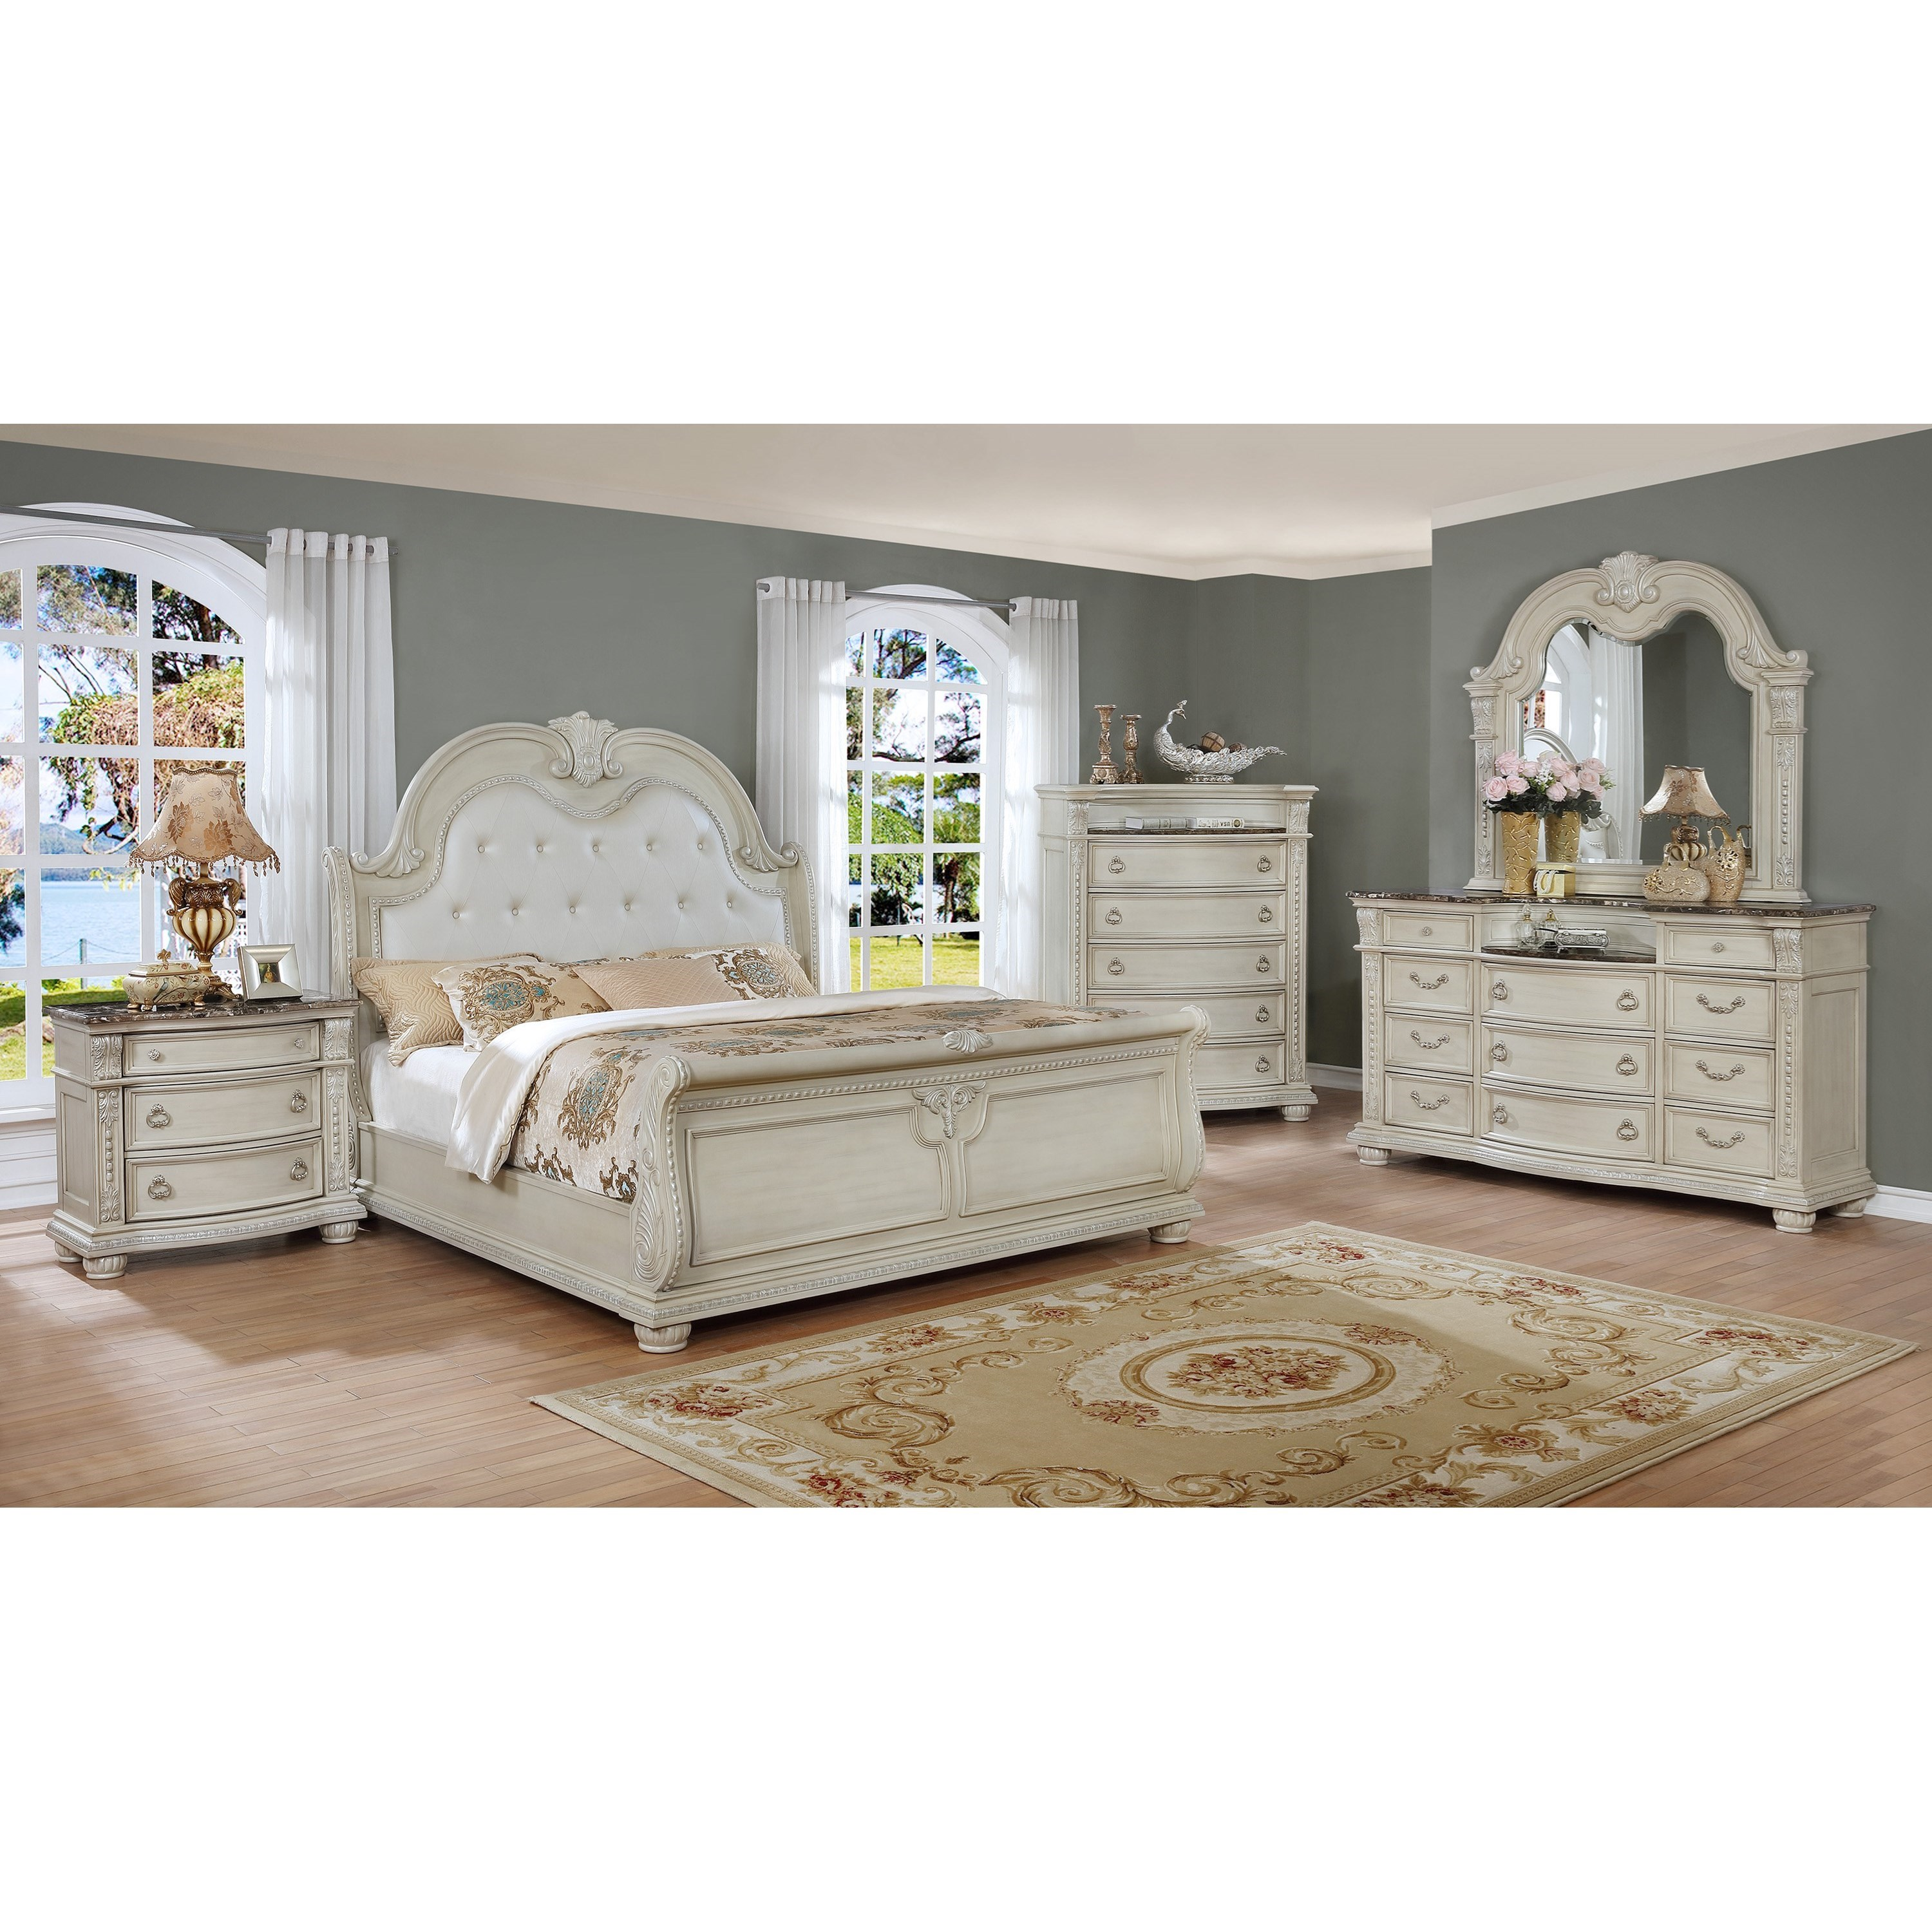 Stanley California King Bedroom Group by Crown Mark at Northeast Factory Direct